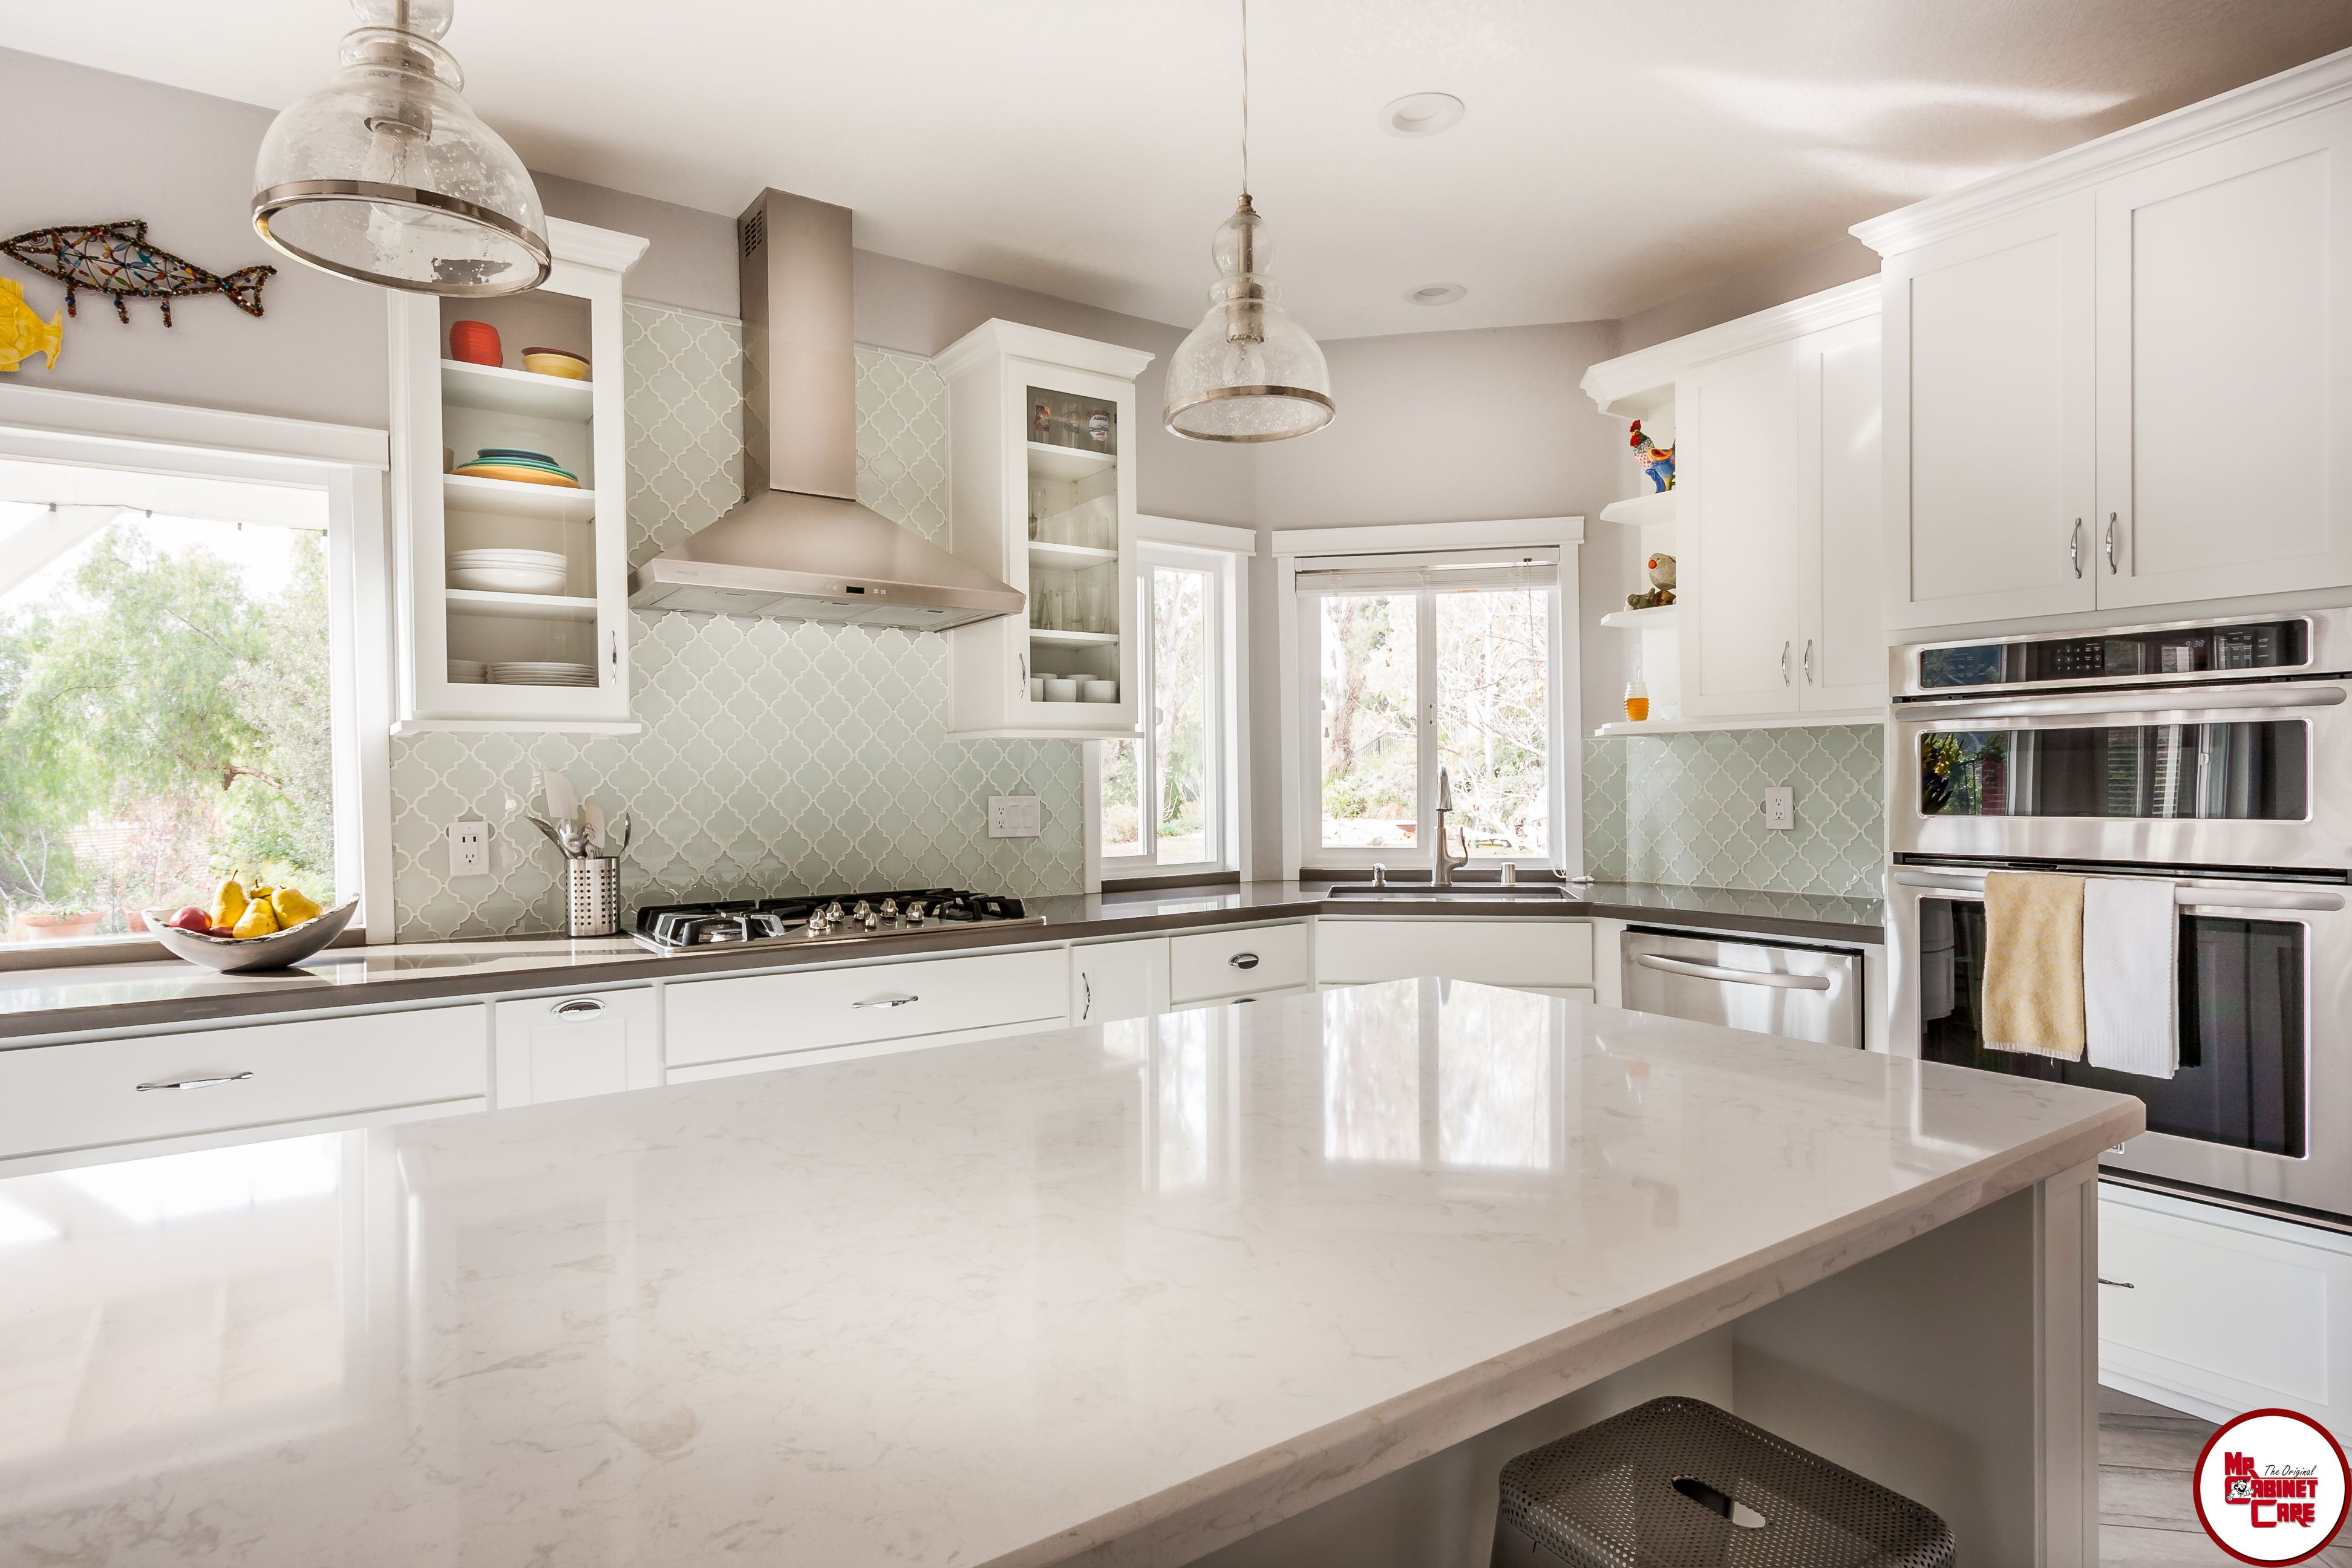 yorba linda kitchen remodeling #kitchen #kitchenremodeling | yorba